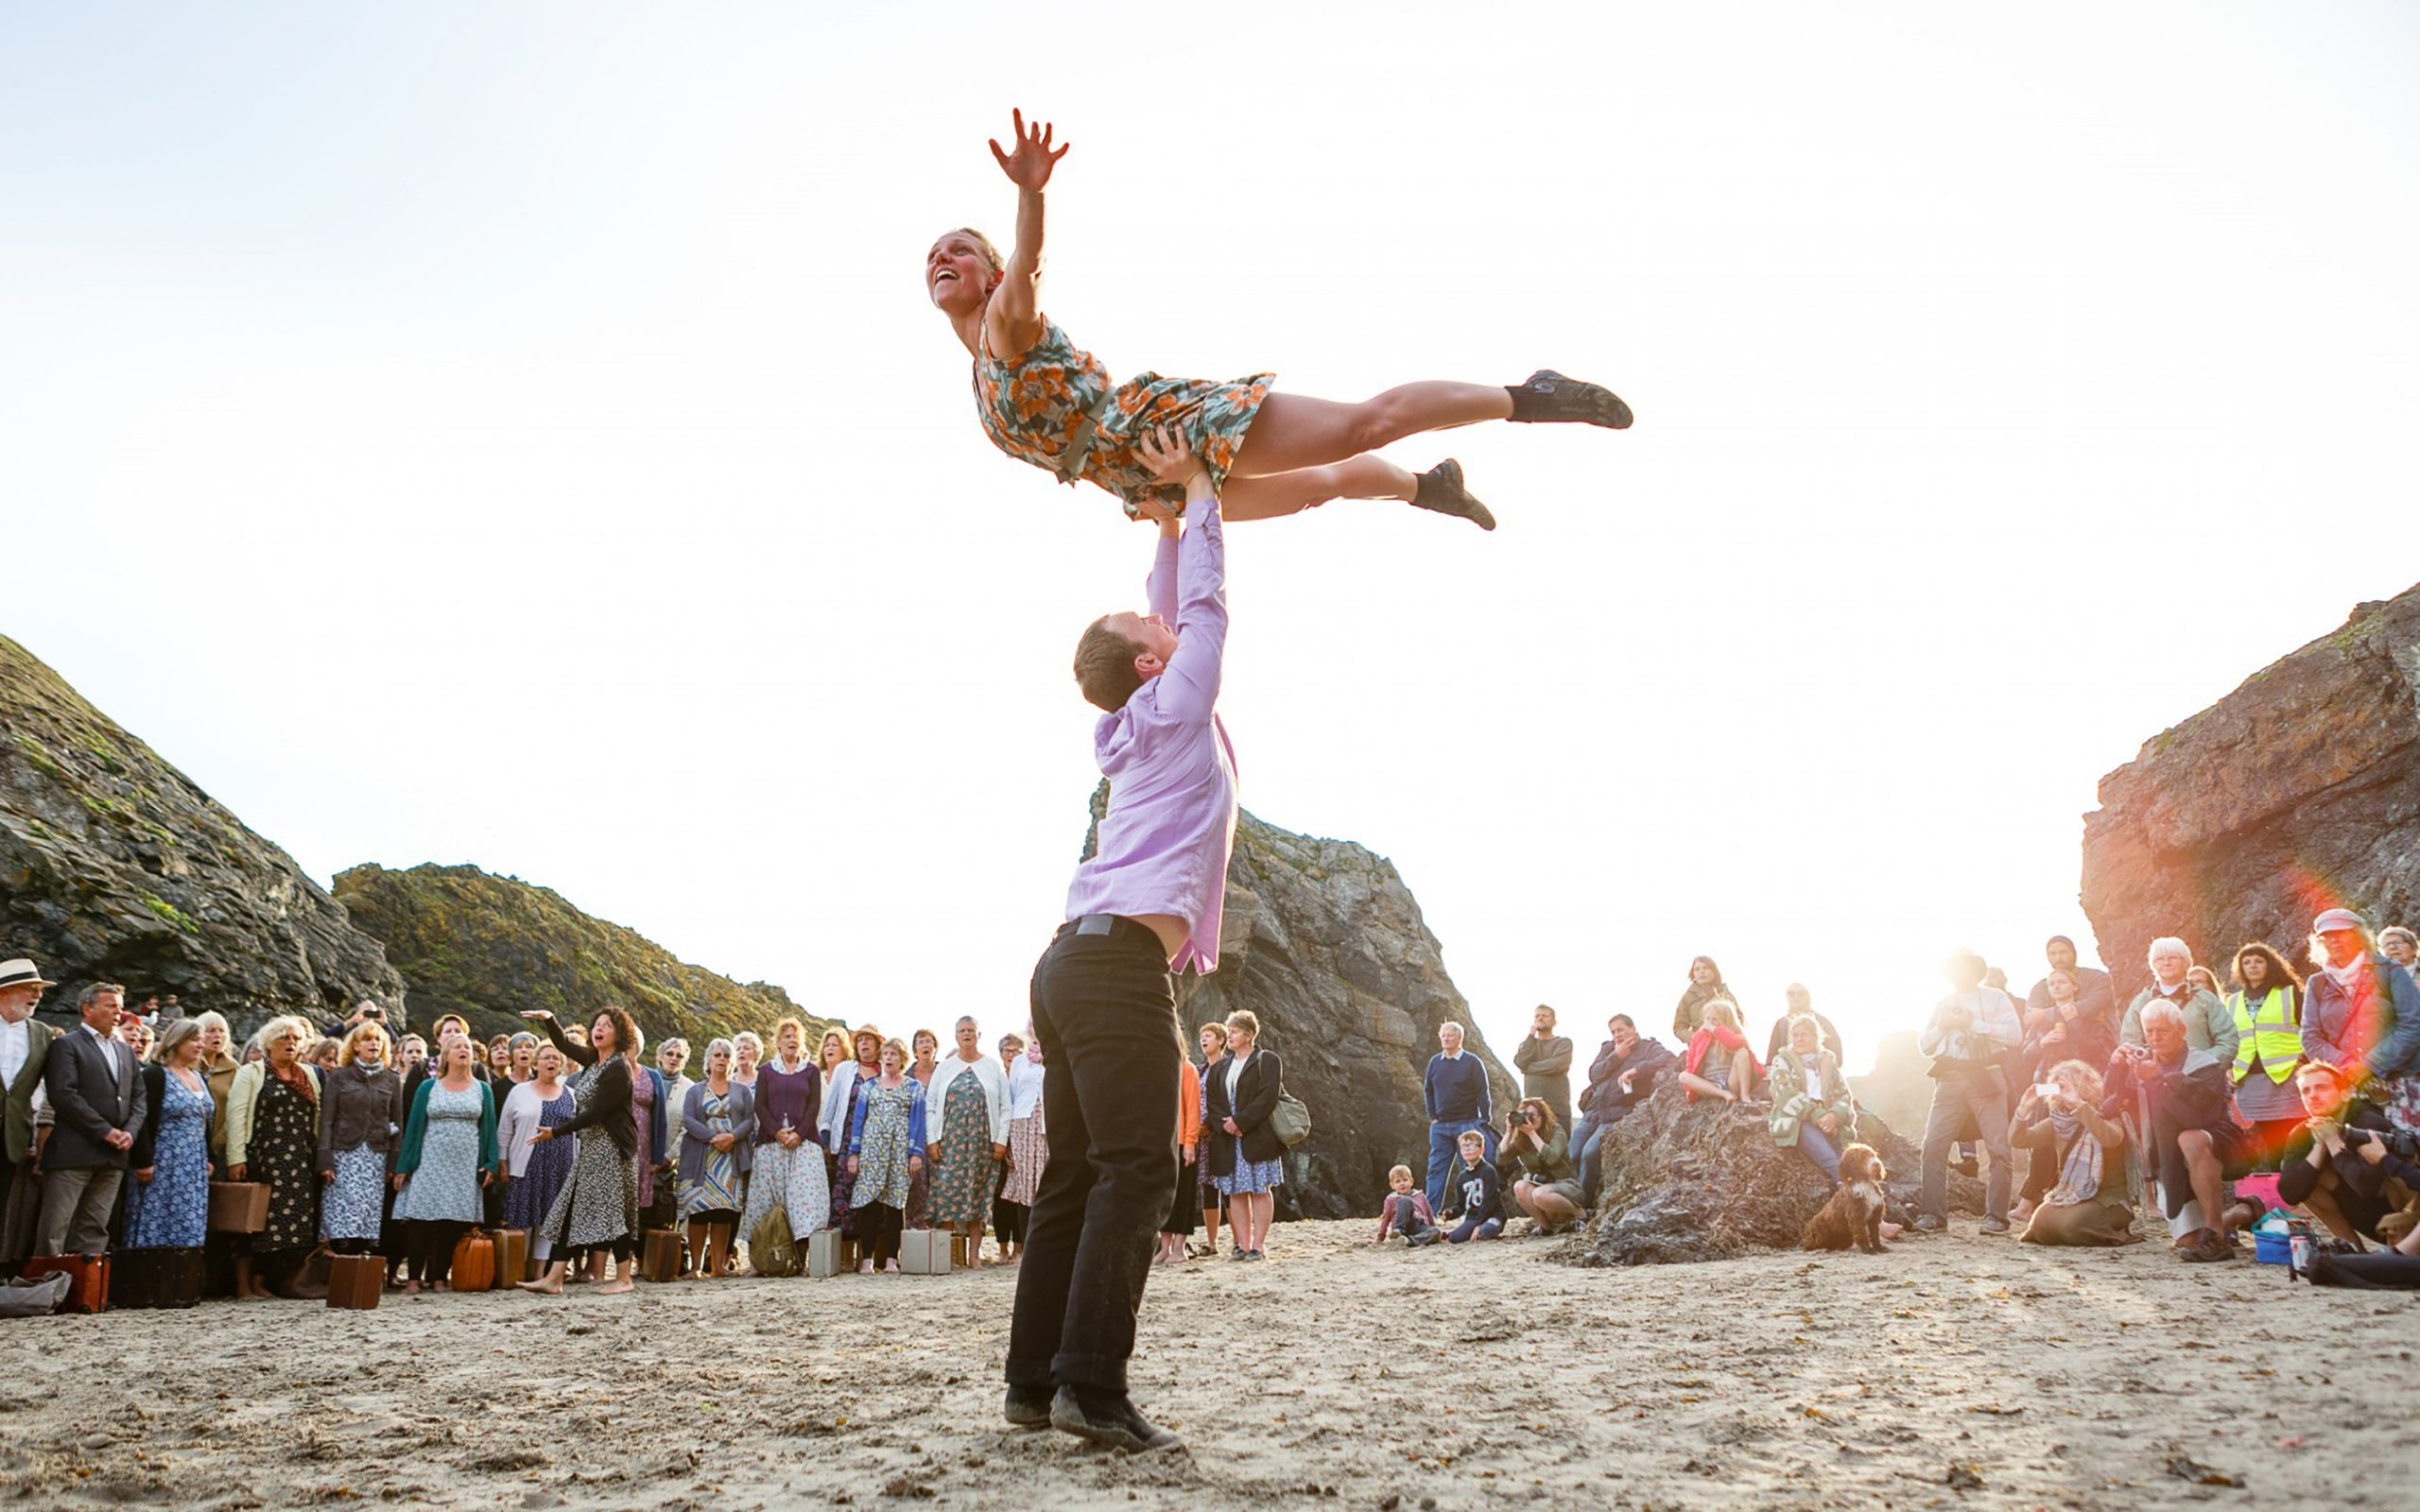 Cornwall longlisted for City of Culture 2025